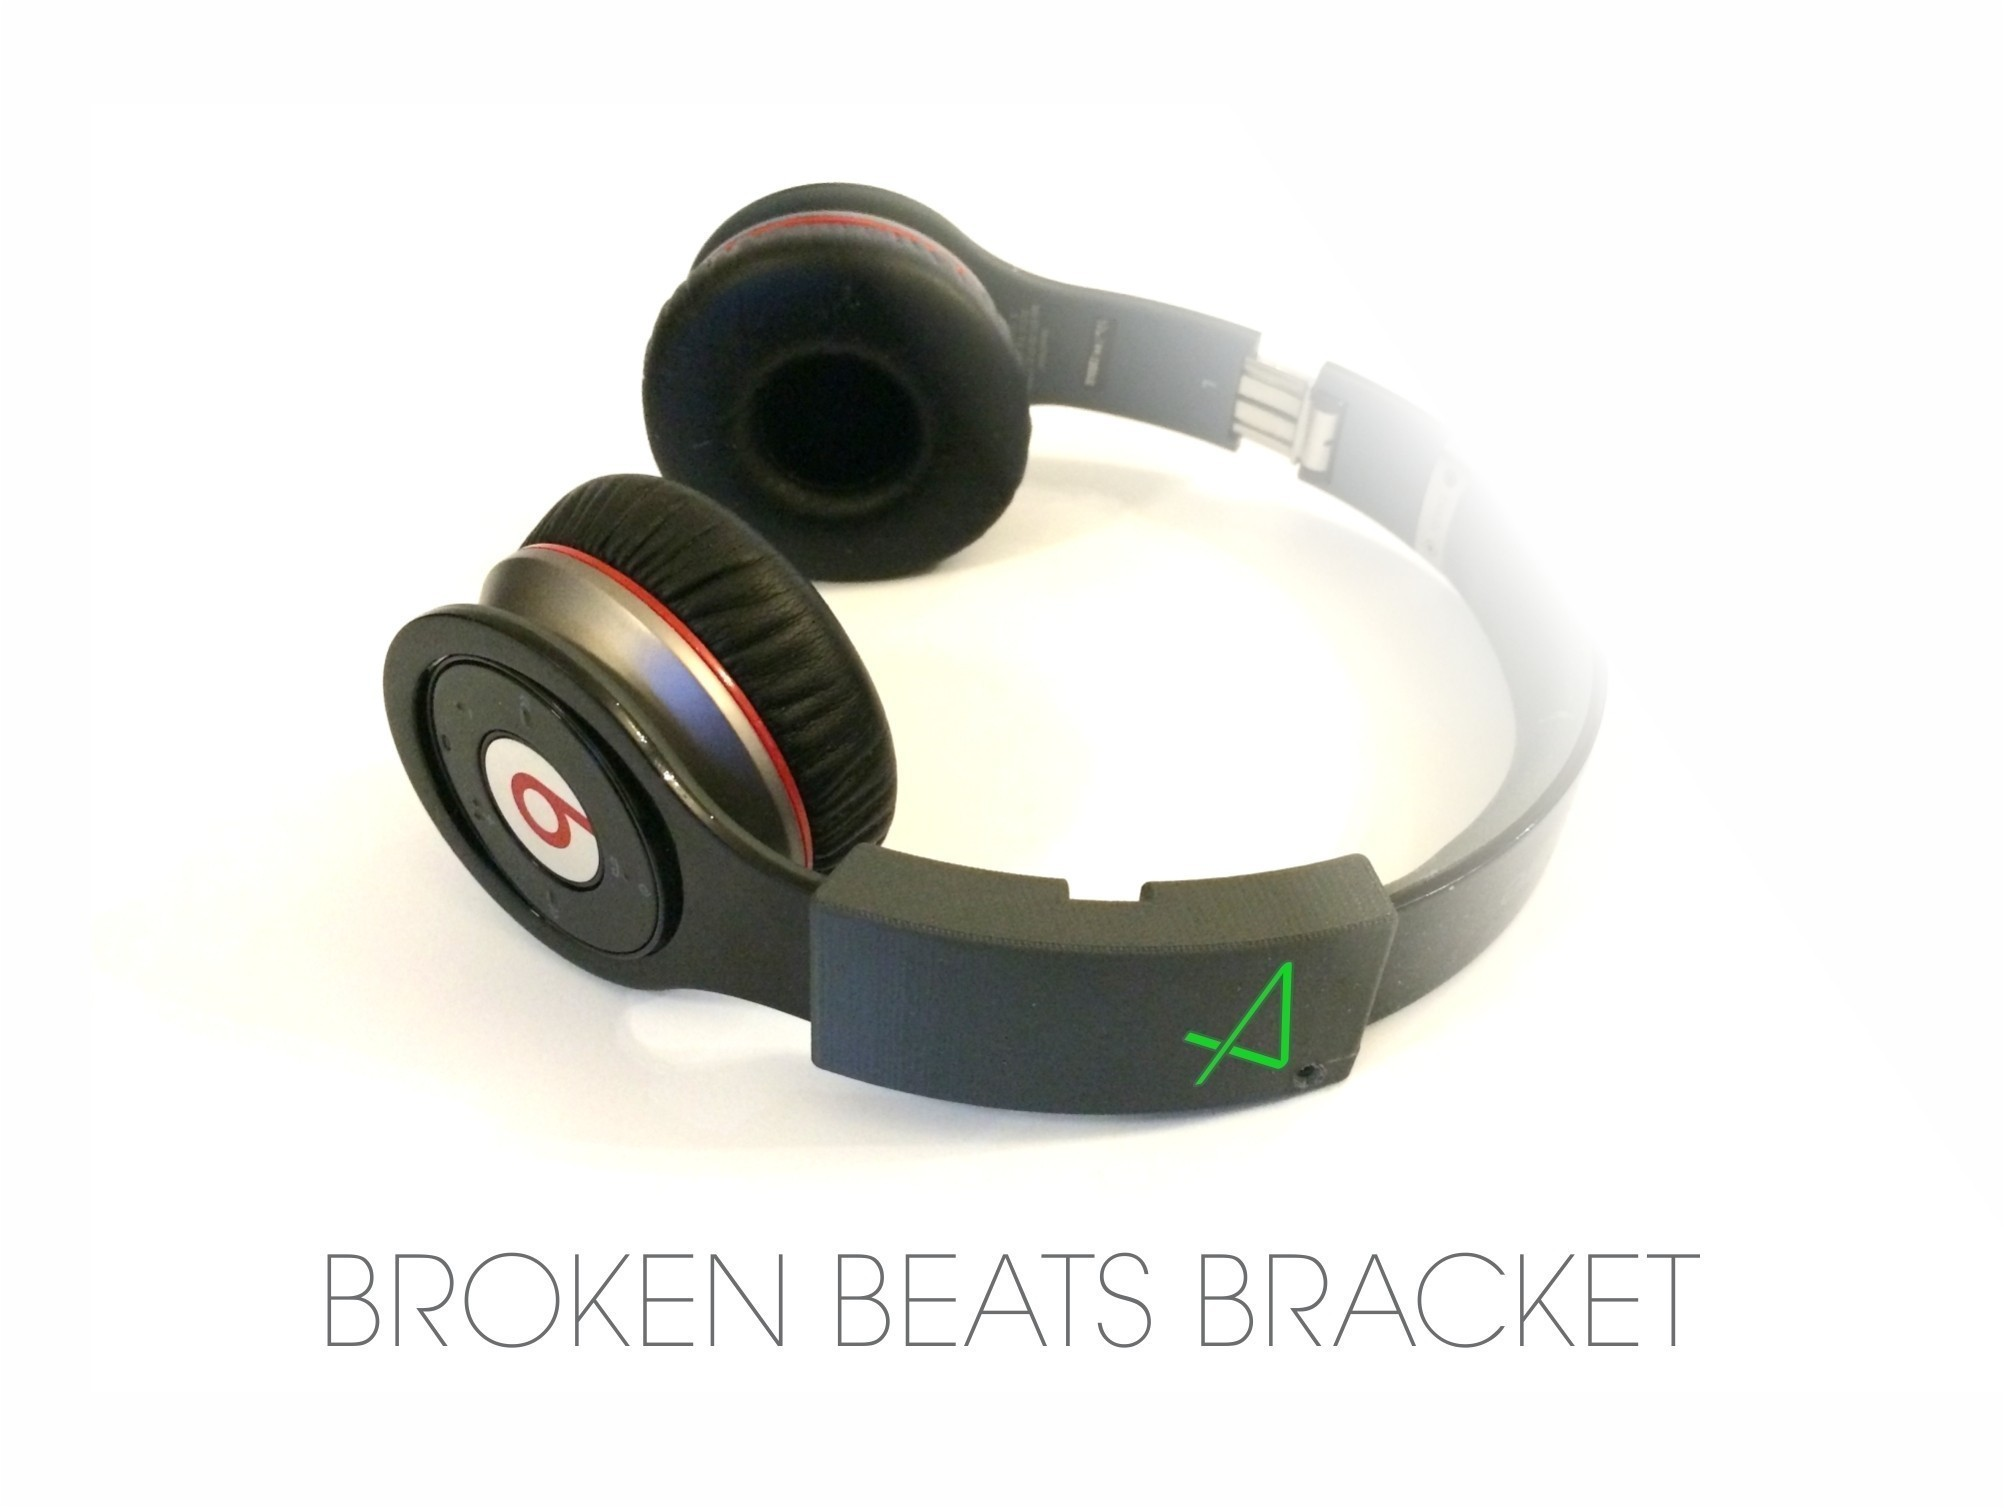 BROKEN_BEATS_STRAP_BRACKET_v2.jpg Download free STL file Broken Beats Bracket • 3D printable design, Avooq